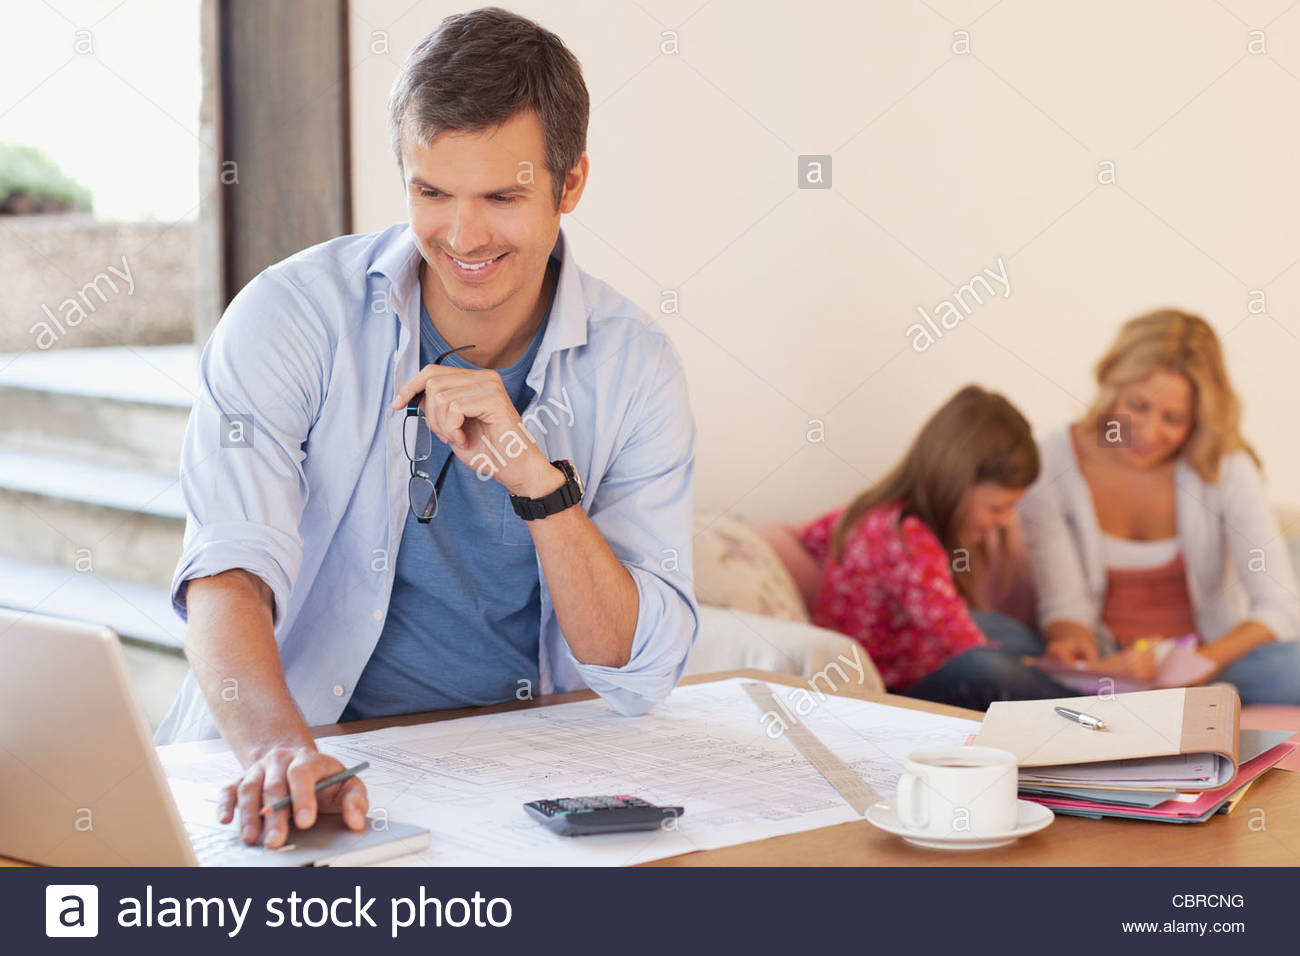 Man working with family in background - Stock Image